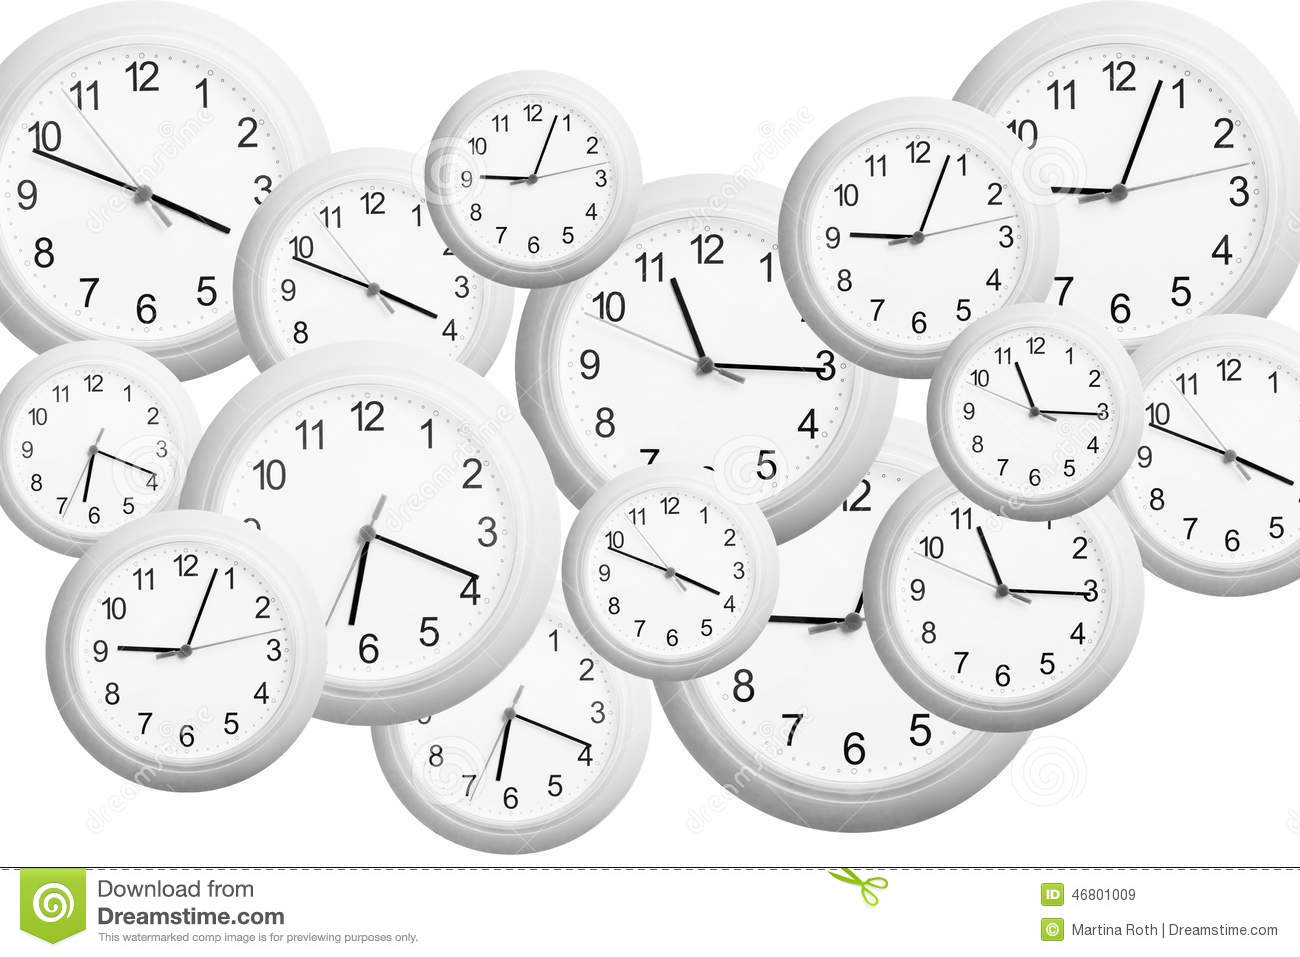 Time is going on